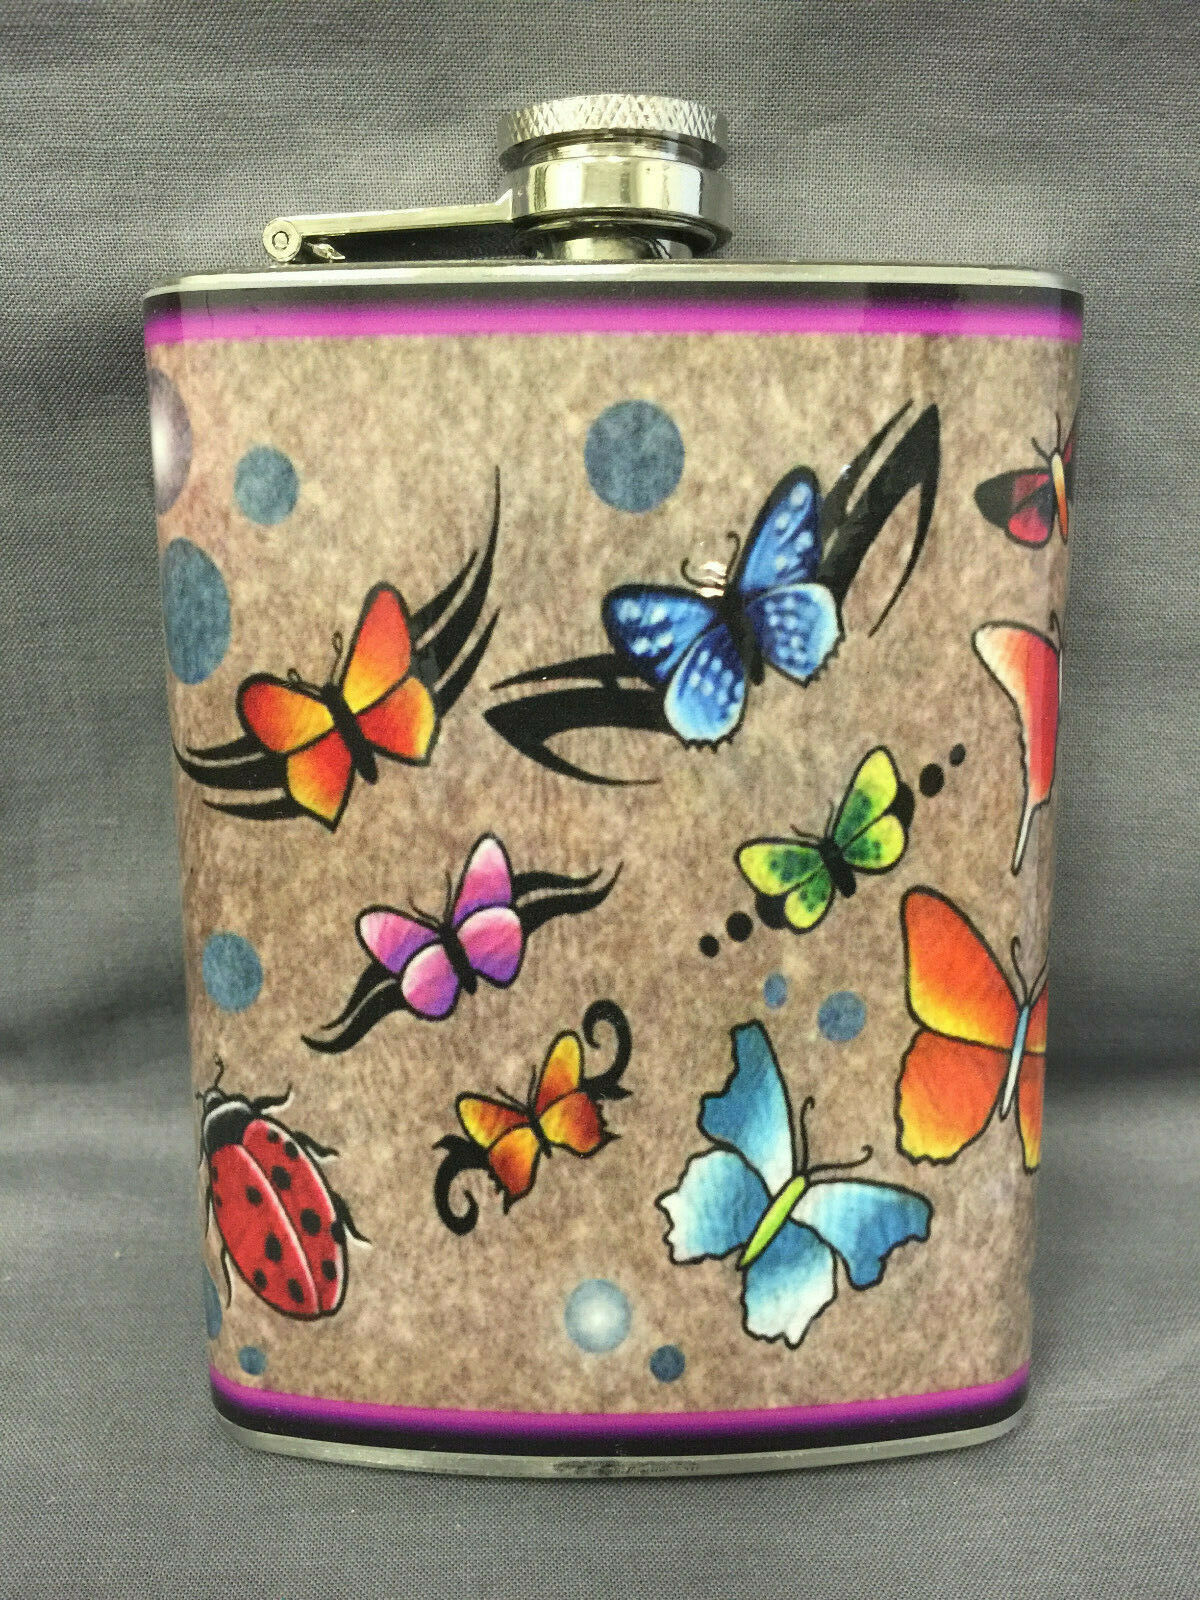 Butterfly Colorful Art Flask 8oz Stainless Steel Drinking Whiskey Clearance item